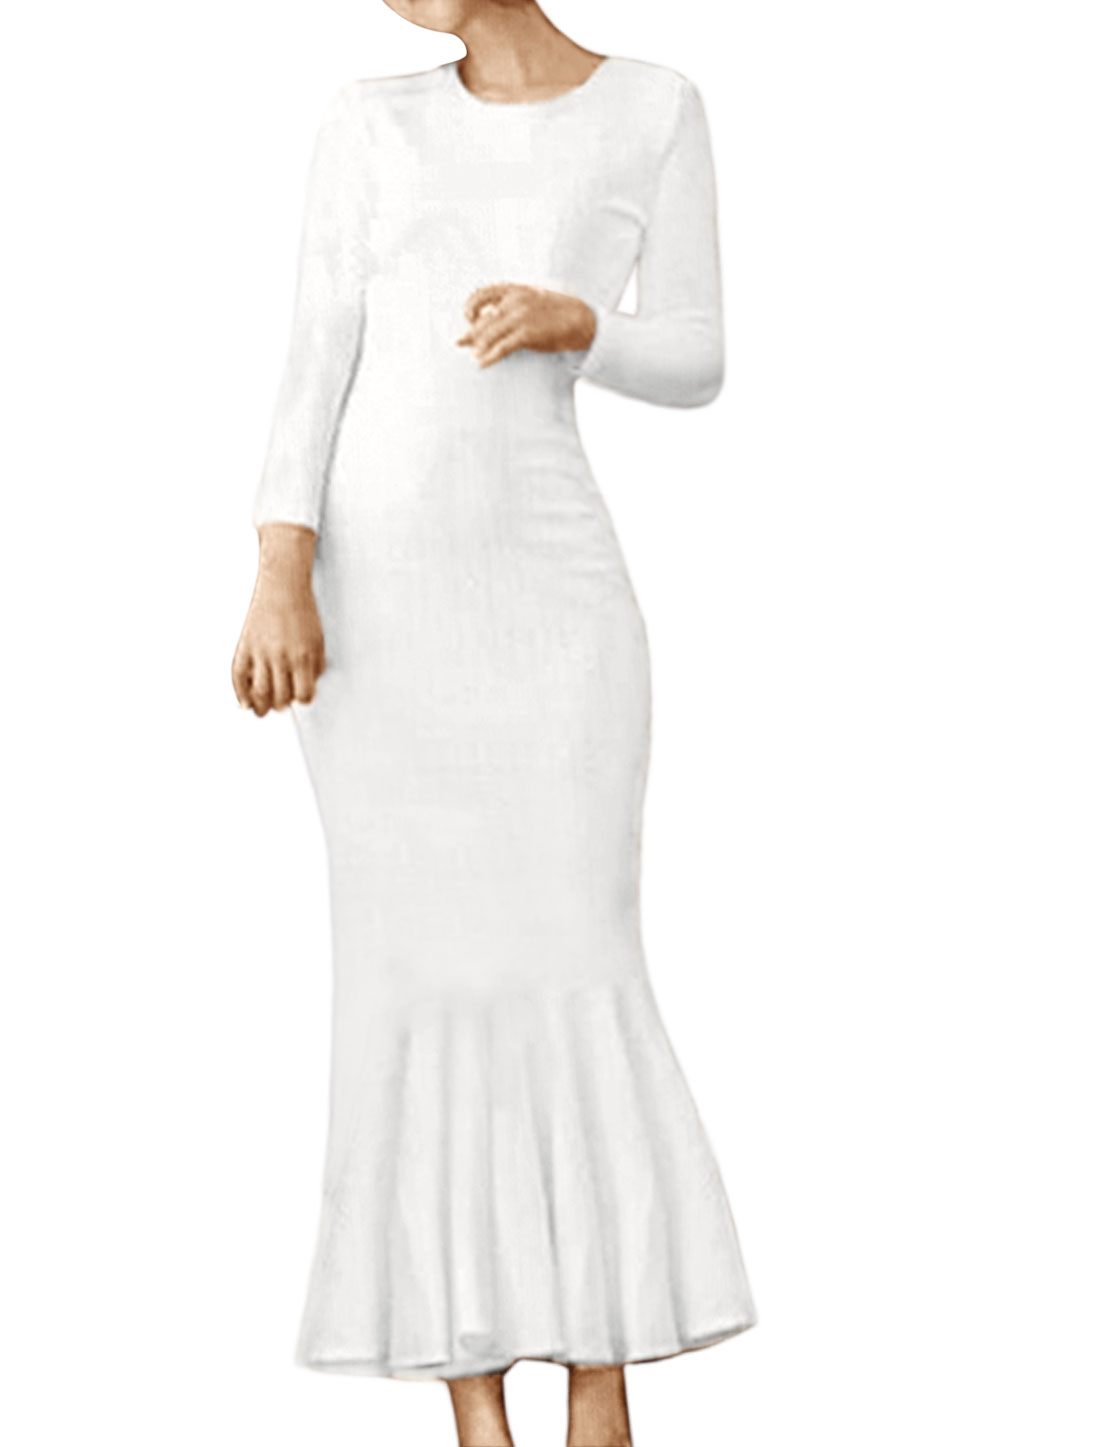 Women Long Sleeves Flouncing Hem Embossed Midi Dress White XS